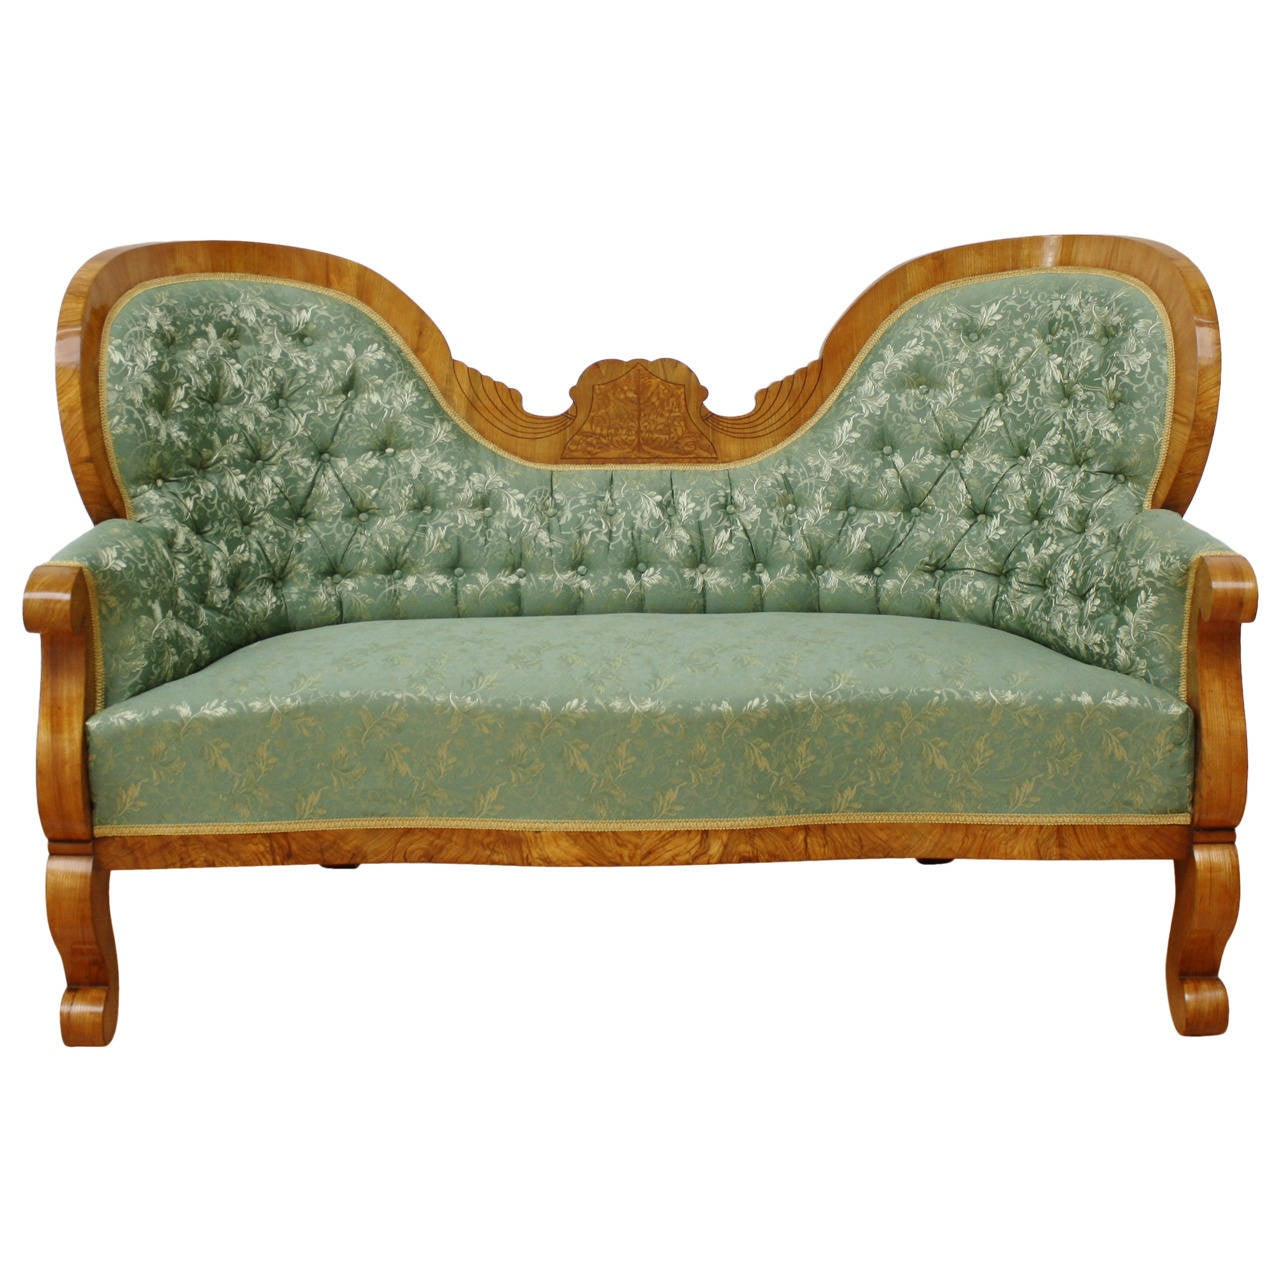 19th century austrian biedermeier sofa for sale at 1stdibs Biedermeier sofa